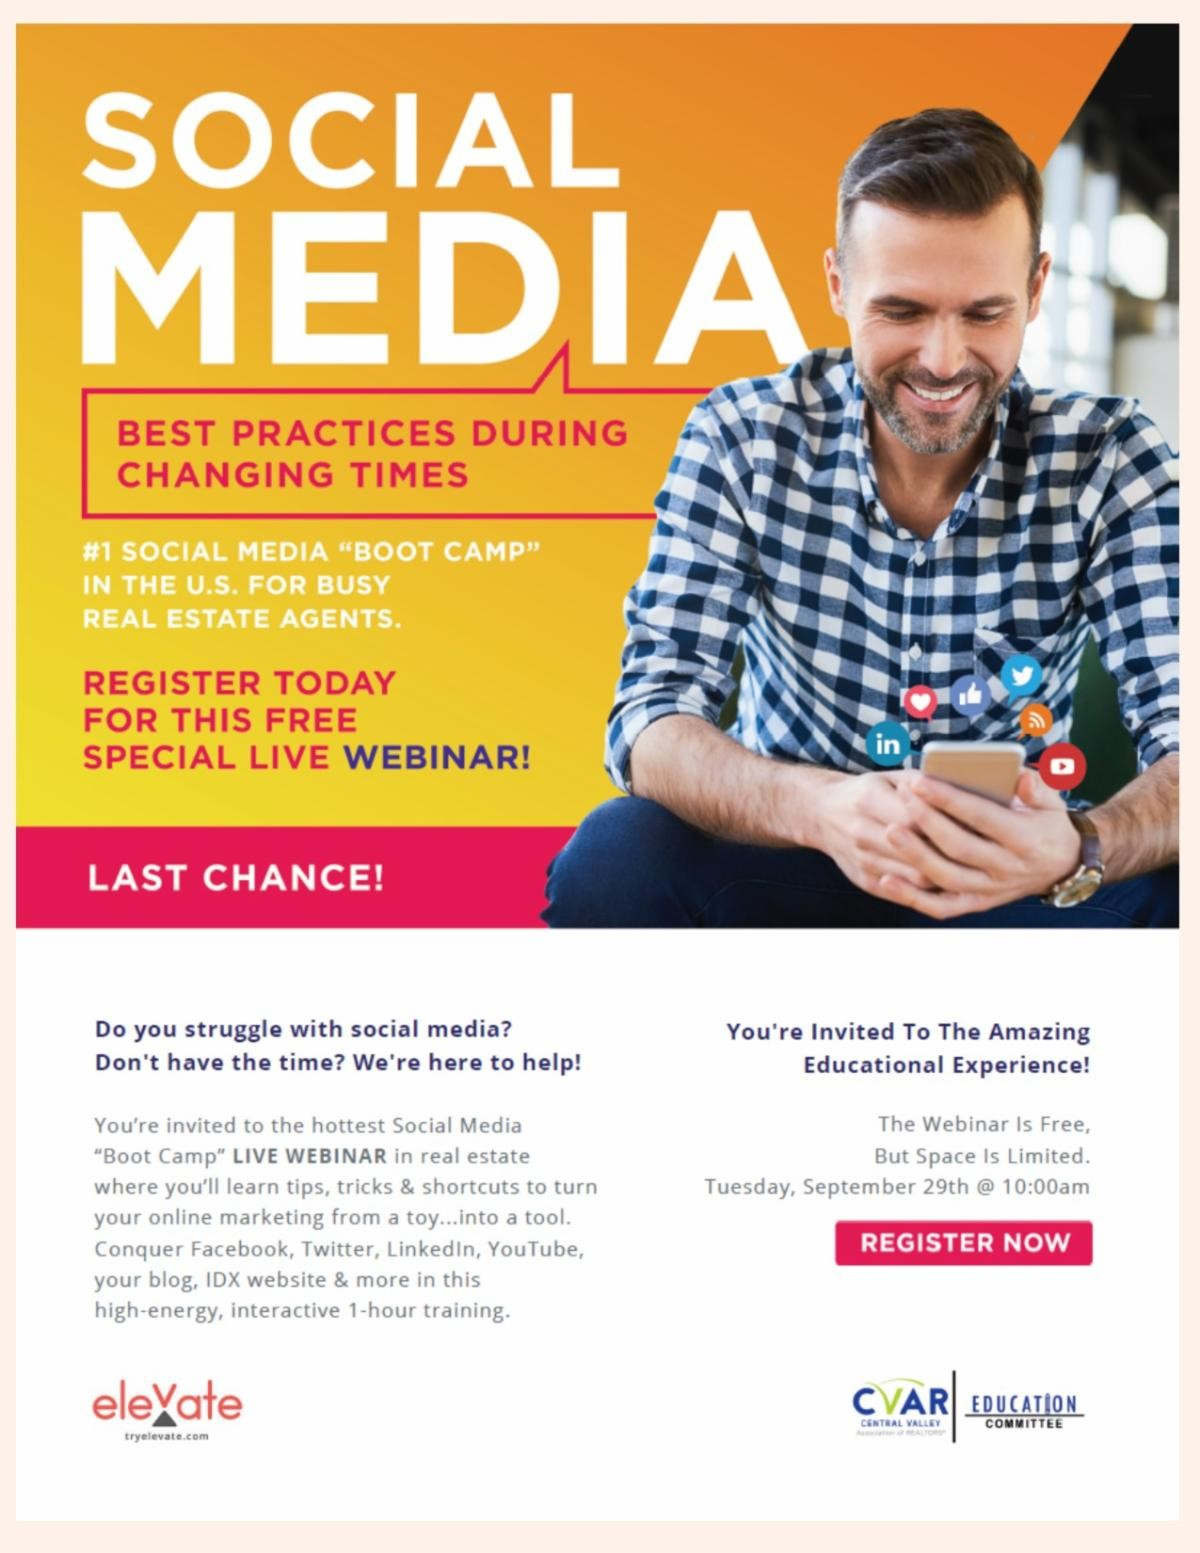 Social Media Best Practices During Changing Times @ WEBINAR